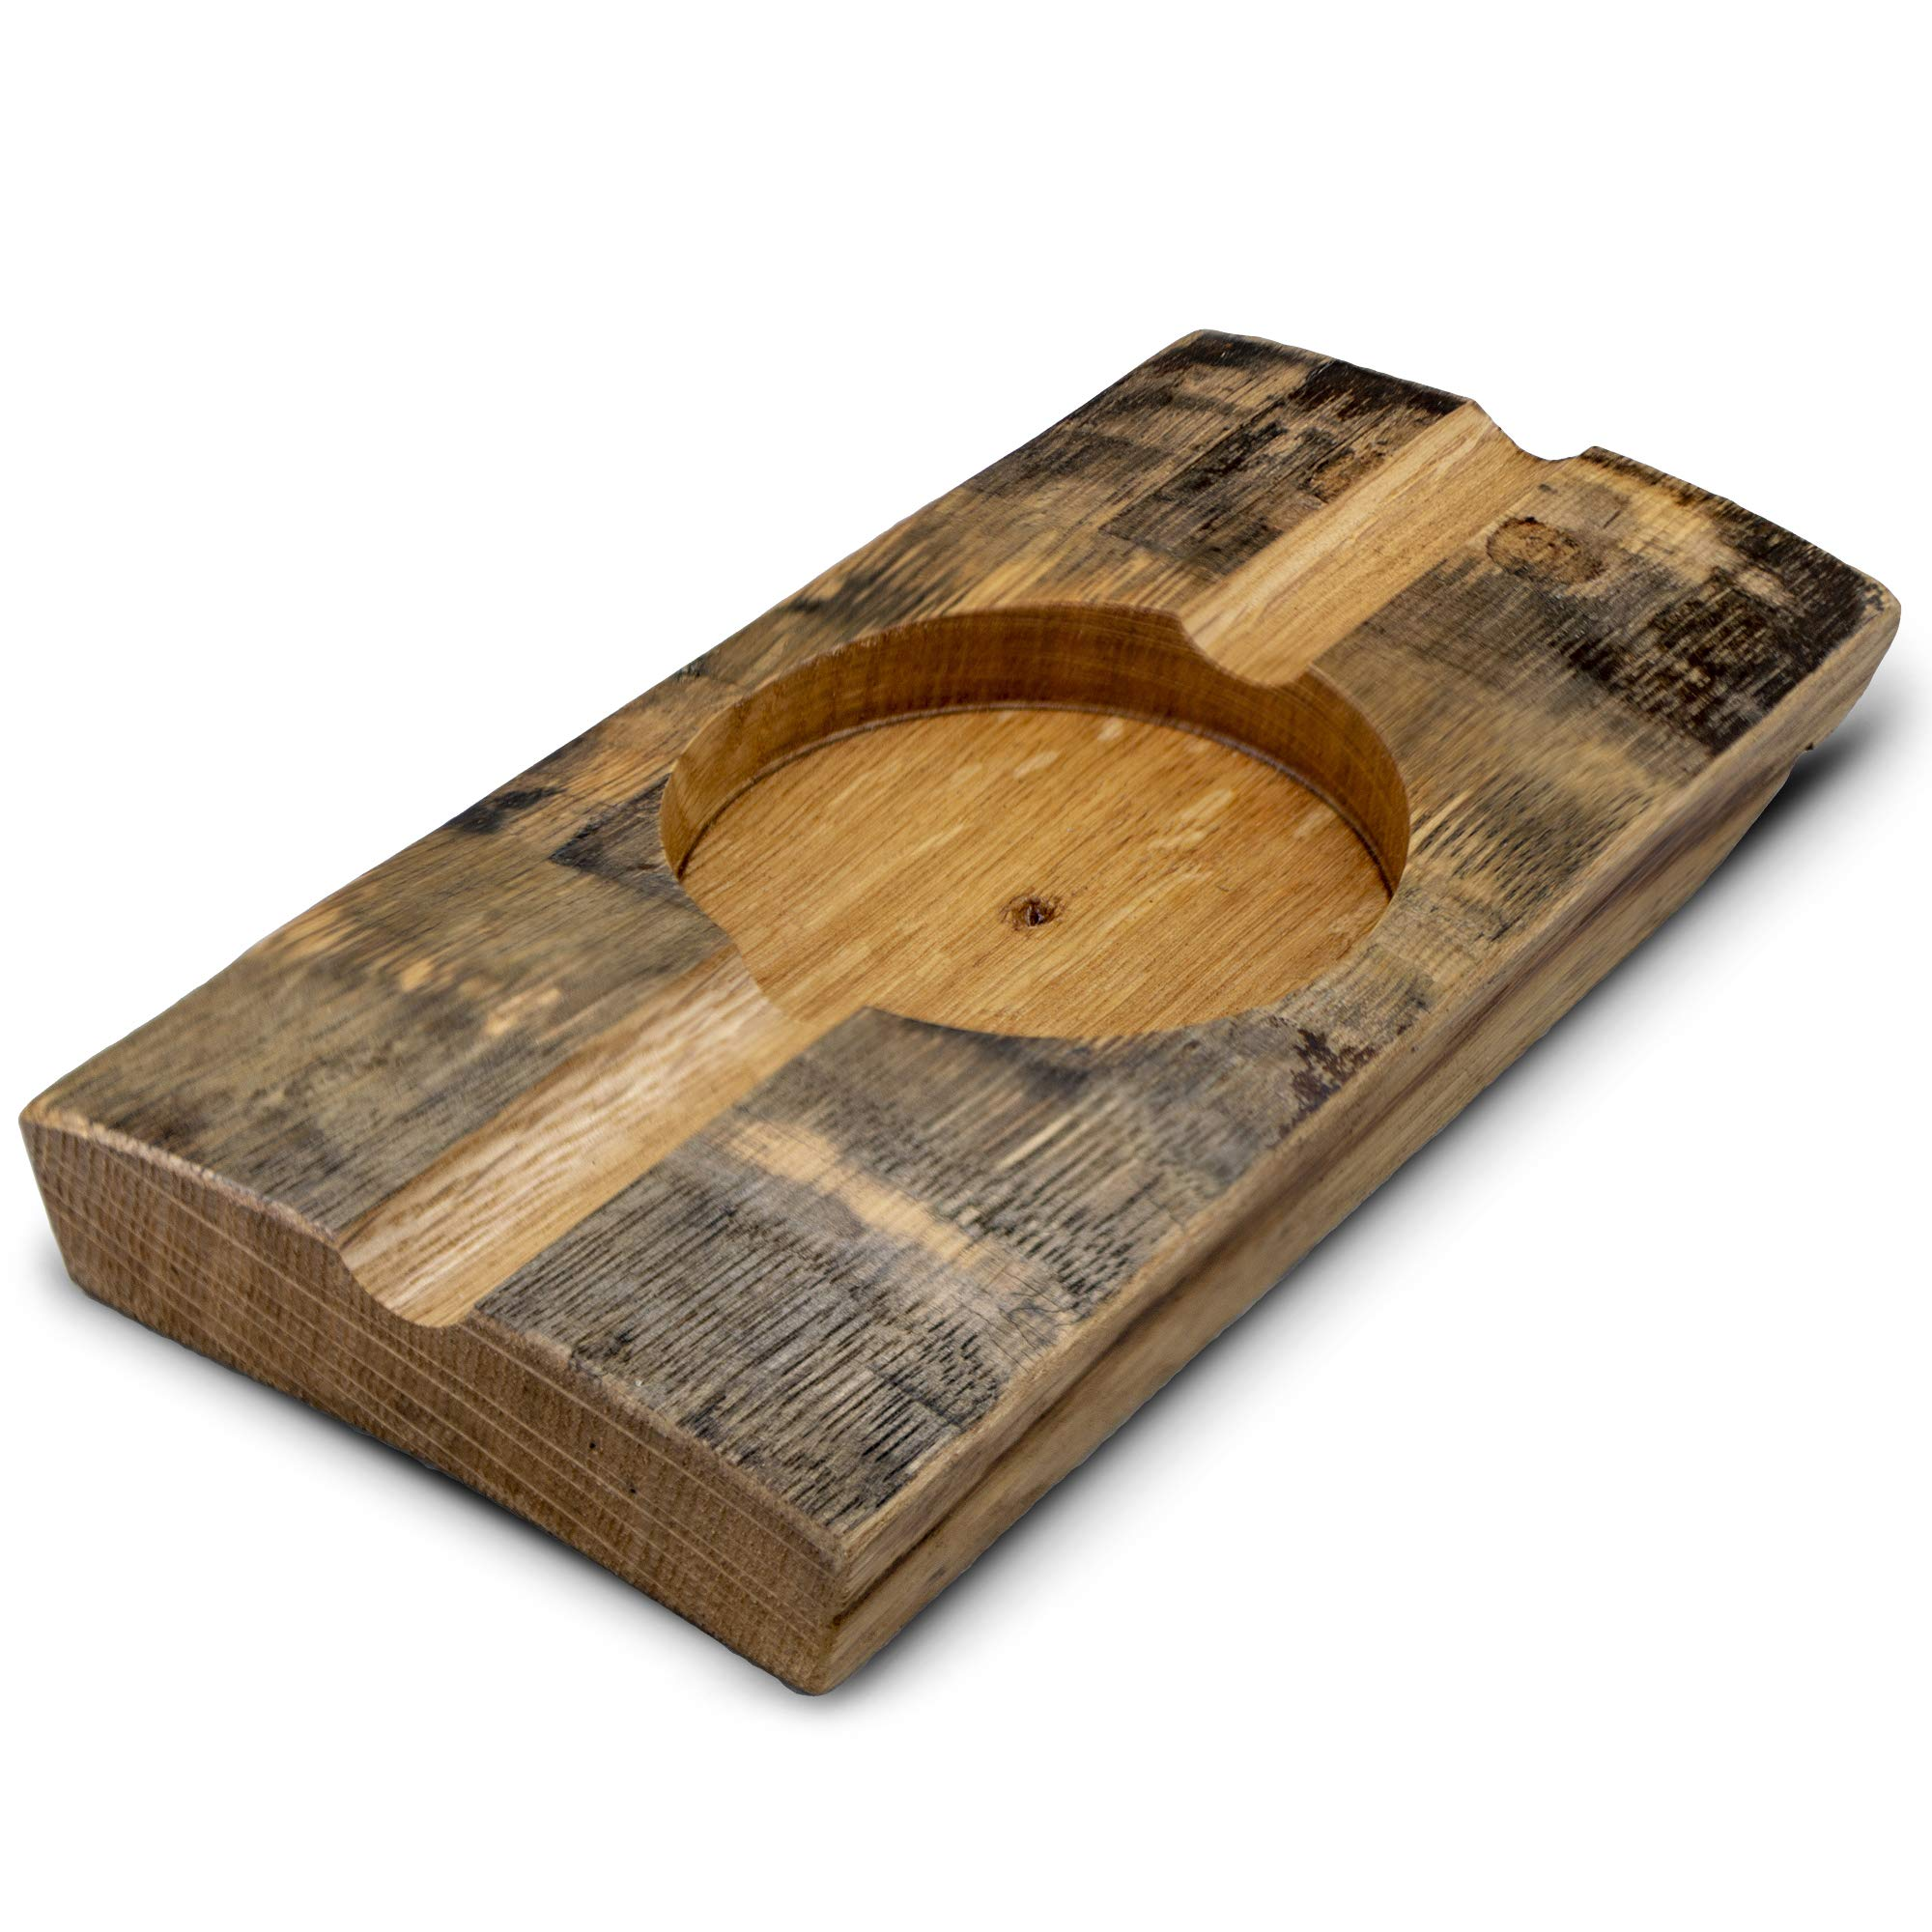 Briar and Oak Bourbon Barrel Stave Cigar Ashtray - Made in The USA from Reclaimed Authentic Bourbon Barrels - Great Cigar Accessories Gift Set for Men